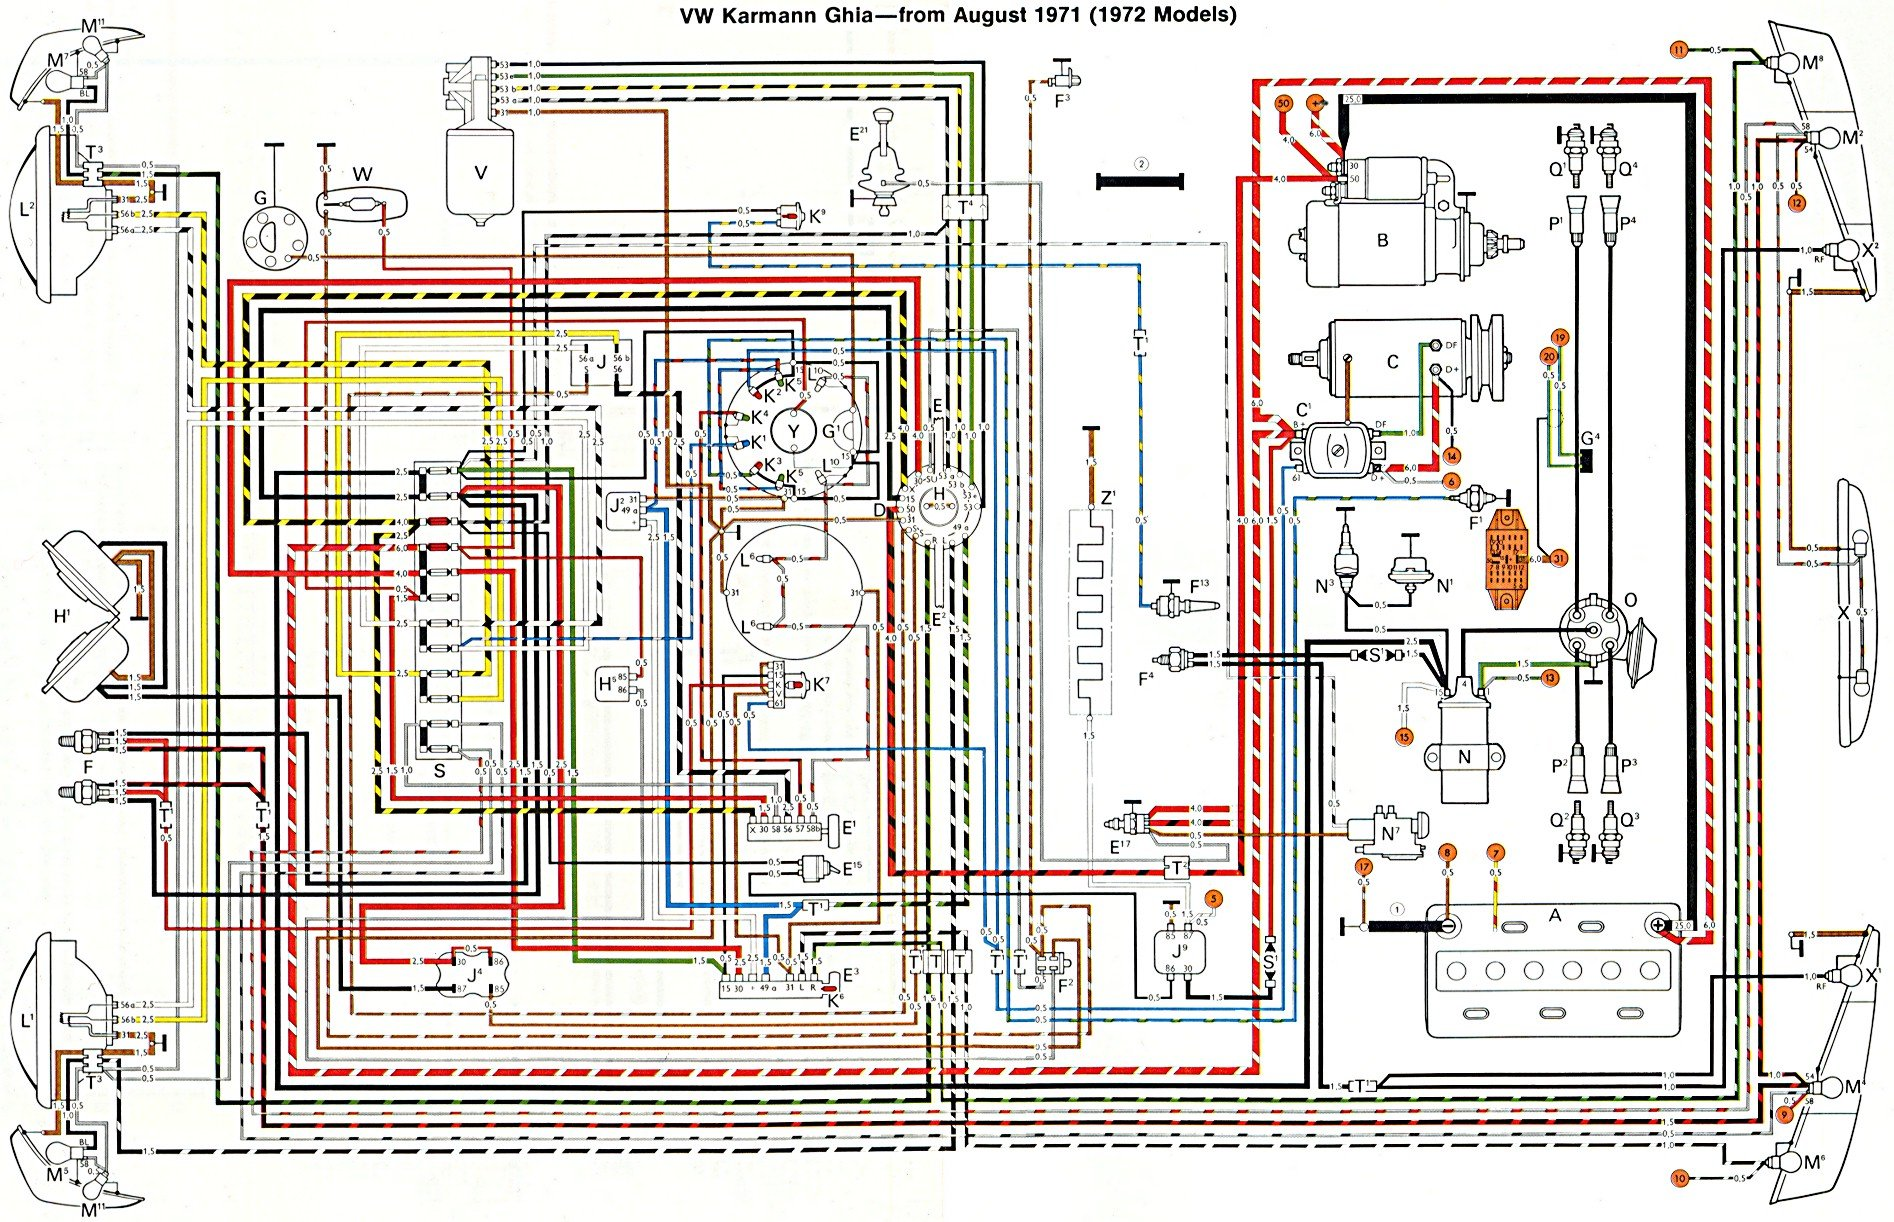 72ghia vw type 3 wiring diagram vw wiring diagrams free downloads \u2022 free vw type 3 wiring harness at readyjetset.co